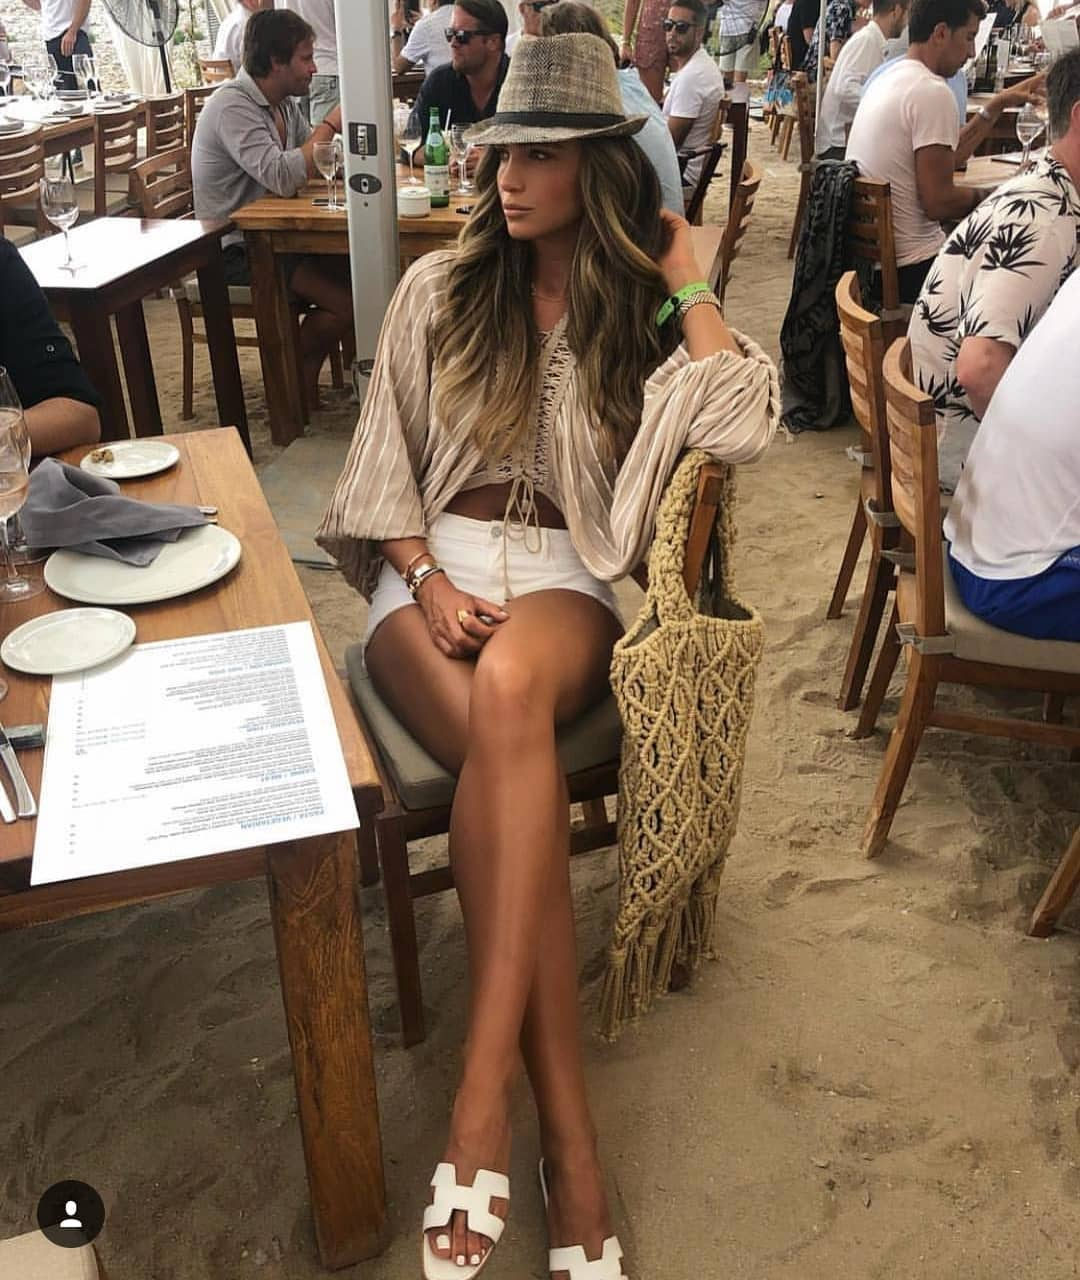 Loose Sleeve Linen Blouse With White Shorts And White Slides For Summer 2019